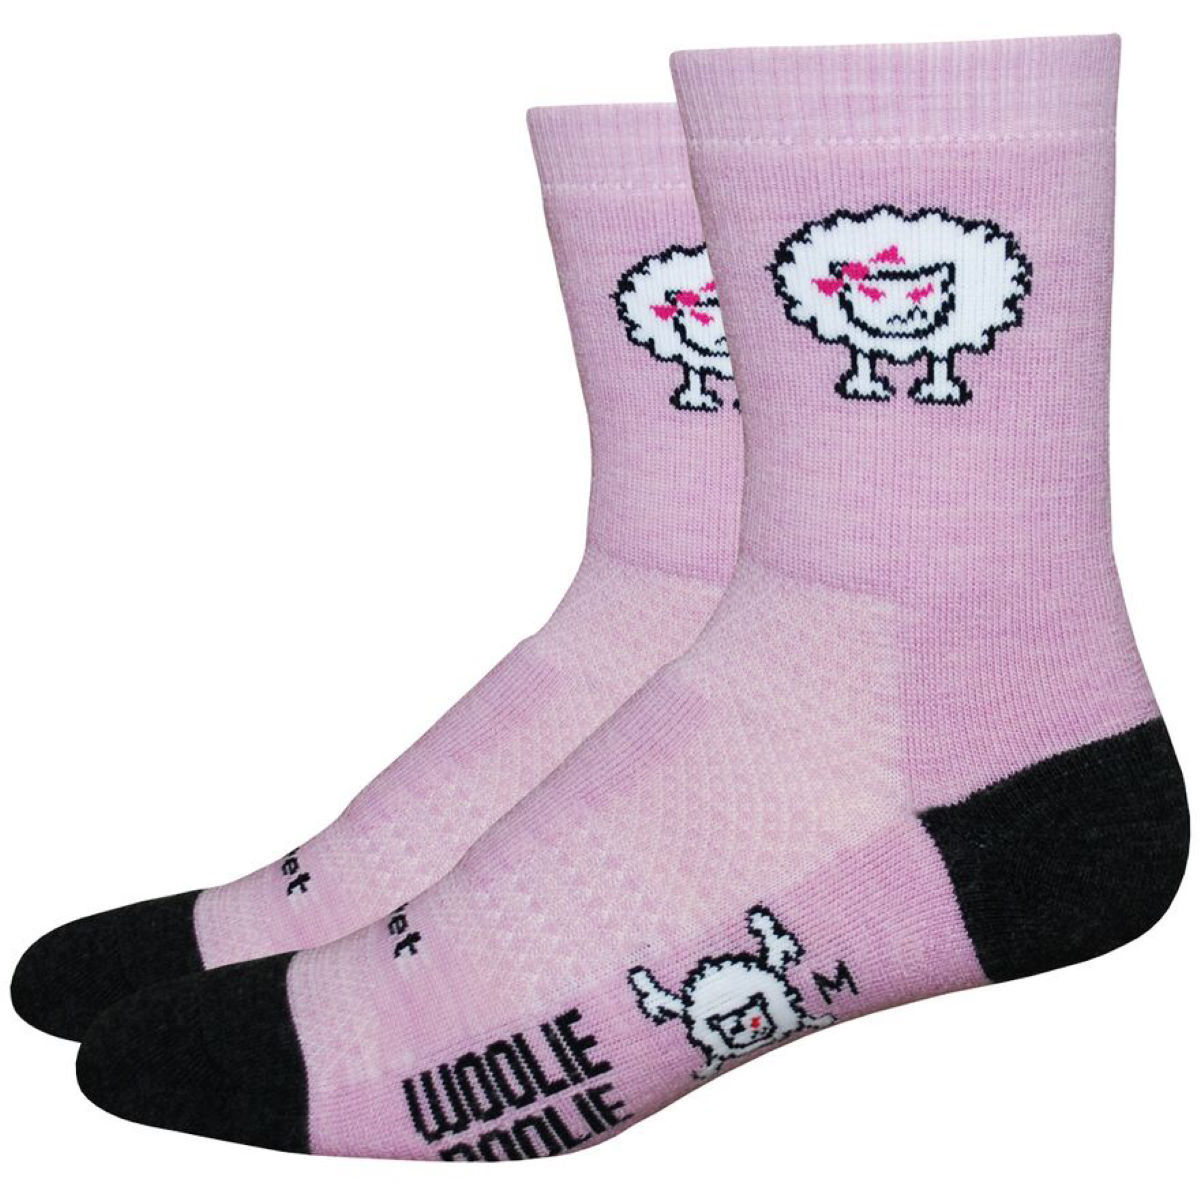 Chaussettes DeFeet Woolie Boolie 2 Bad Sheep - M Pink/Black